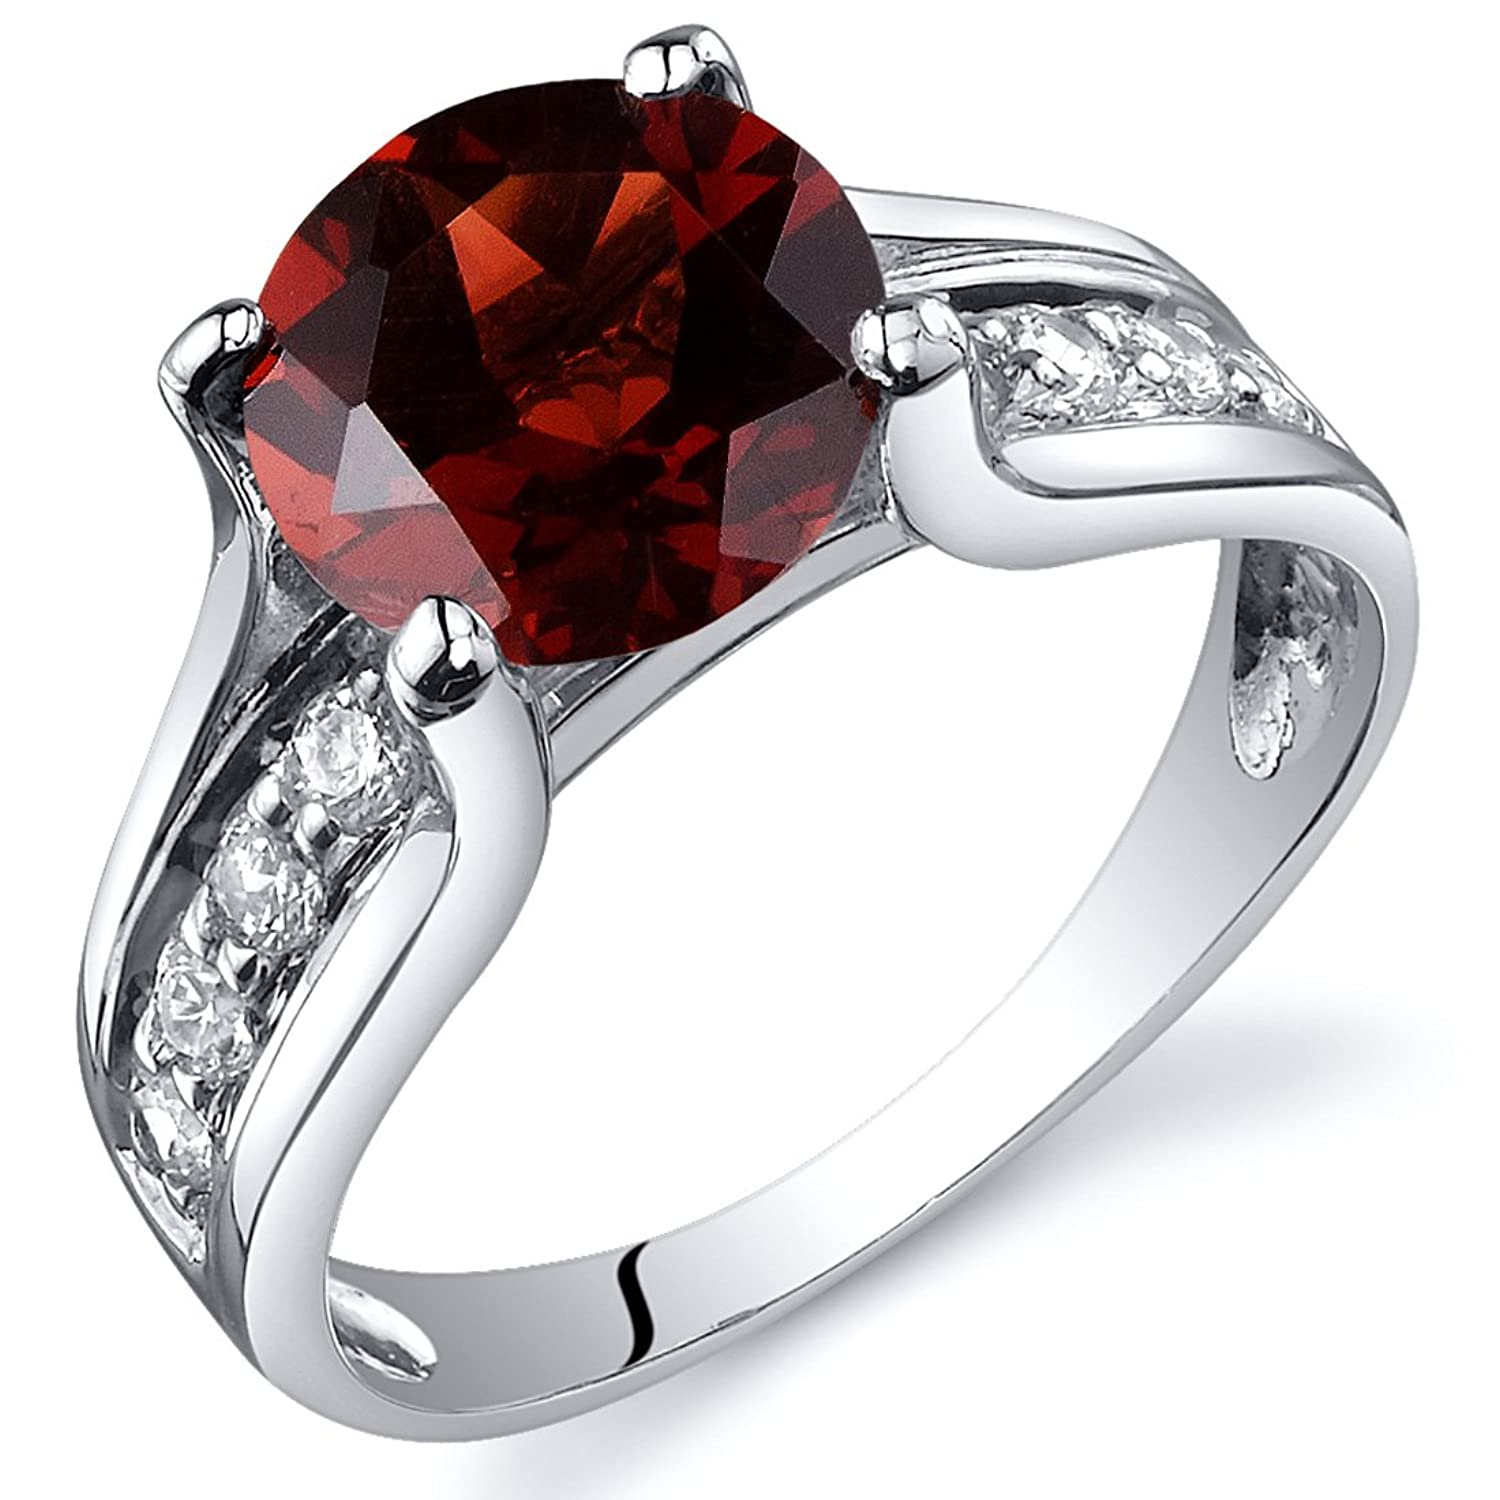 amazoncom garnet solitaire style ring sterling silver 250 carats sizes 5 to 9 garnet engagement ring jewelry - Garnet Wedding Ring